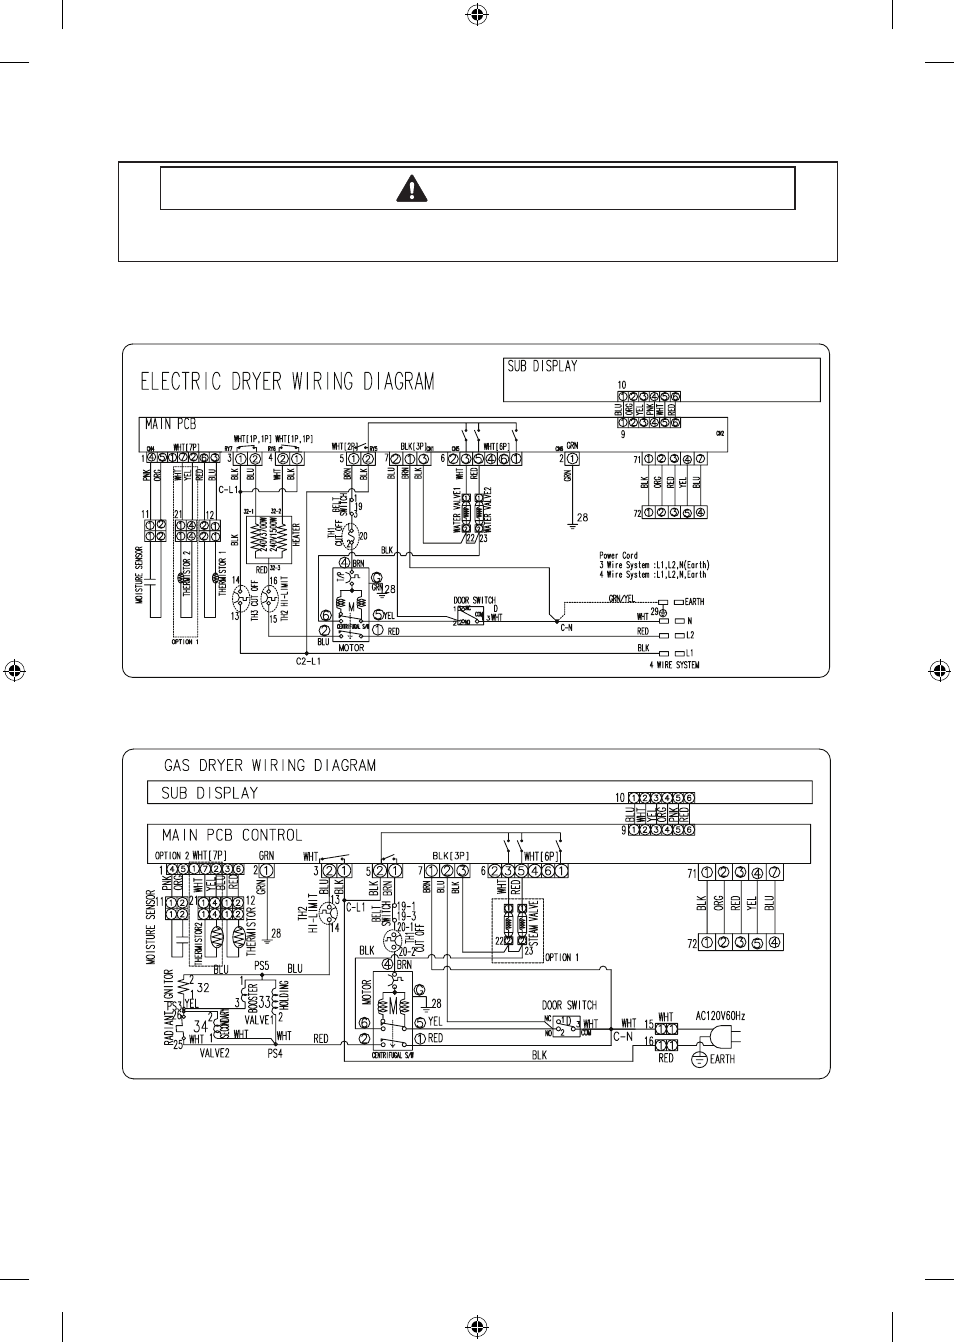 samsung electric dryer wiring diagram old maytag electric dryer wiring diagram for samsung electric dryer. model dv42h5600ep/a3... i unhooked ...